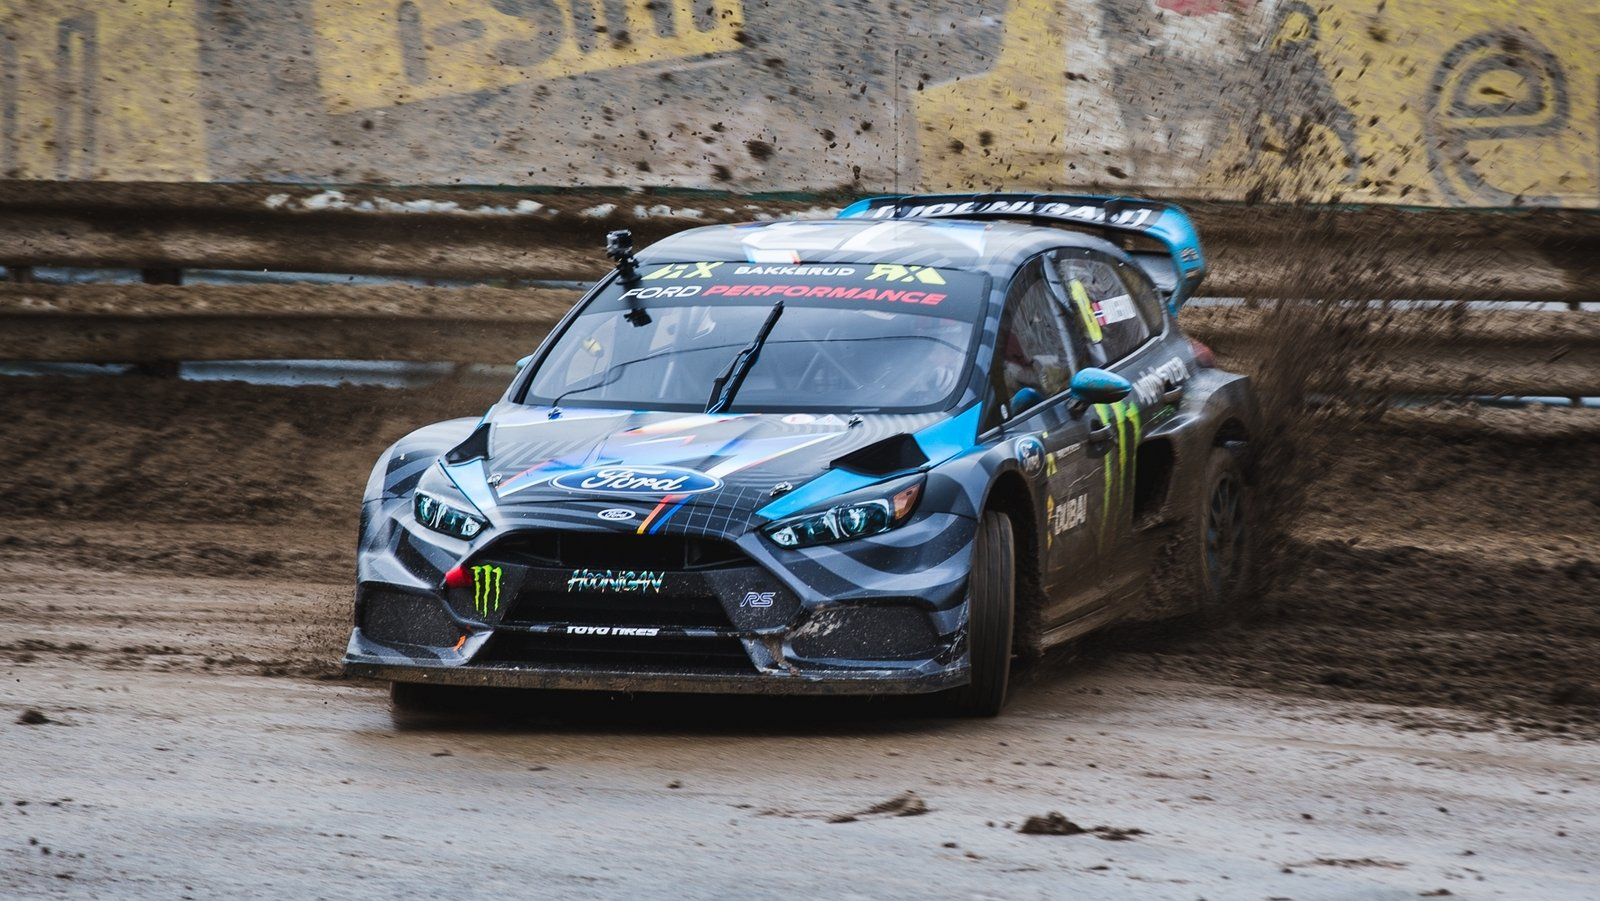 & 2016 Ford Focus RS RX By Hoonigan Racing Review - Top Speed markmcfarlin.com